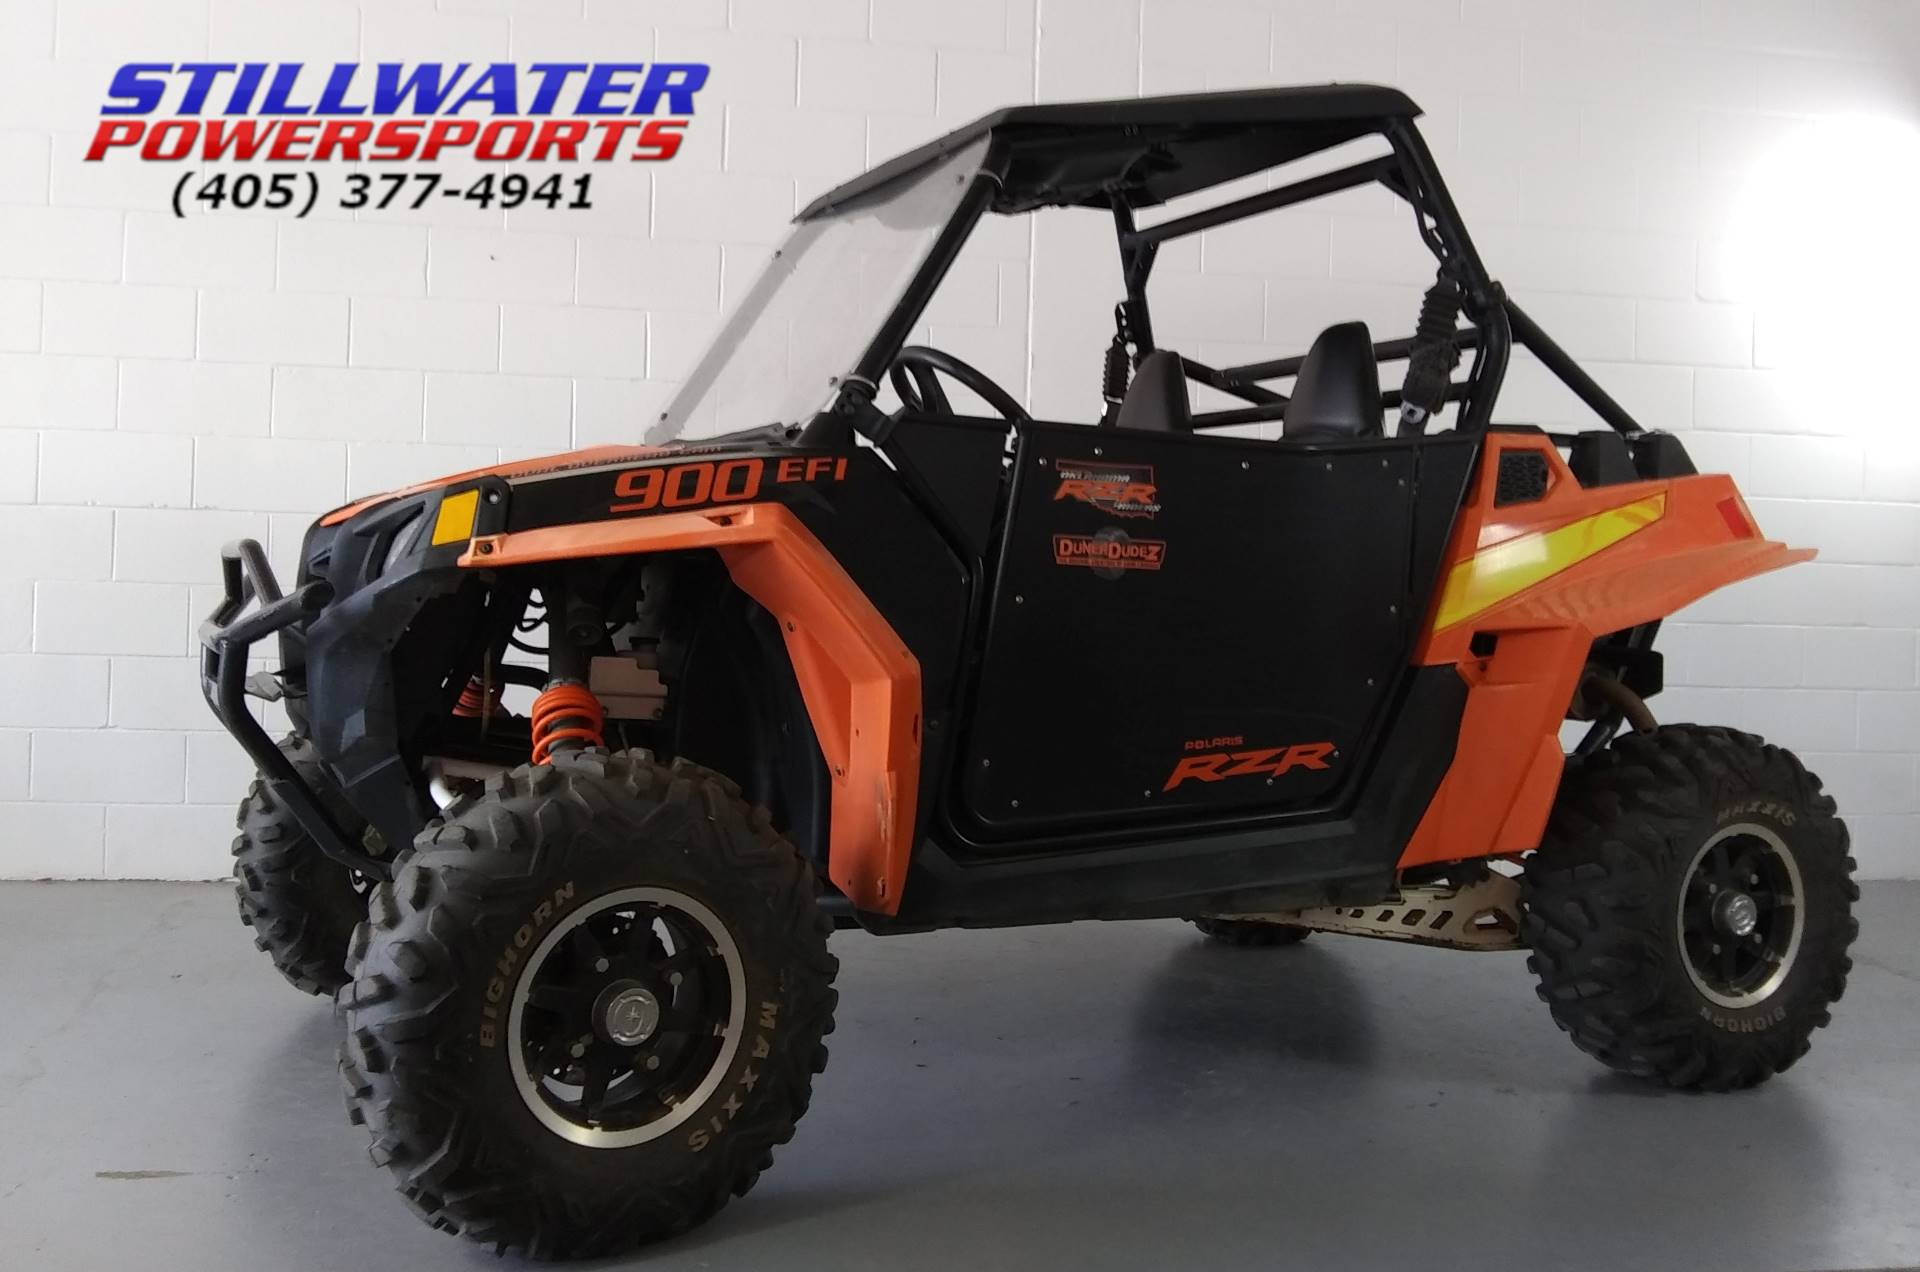 2012 Polaris Ranger RZR® XP 900 LE in Stillwater, Oklahoma - Photo 3